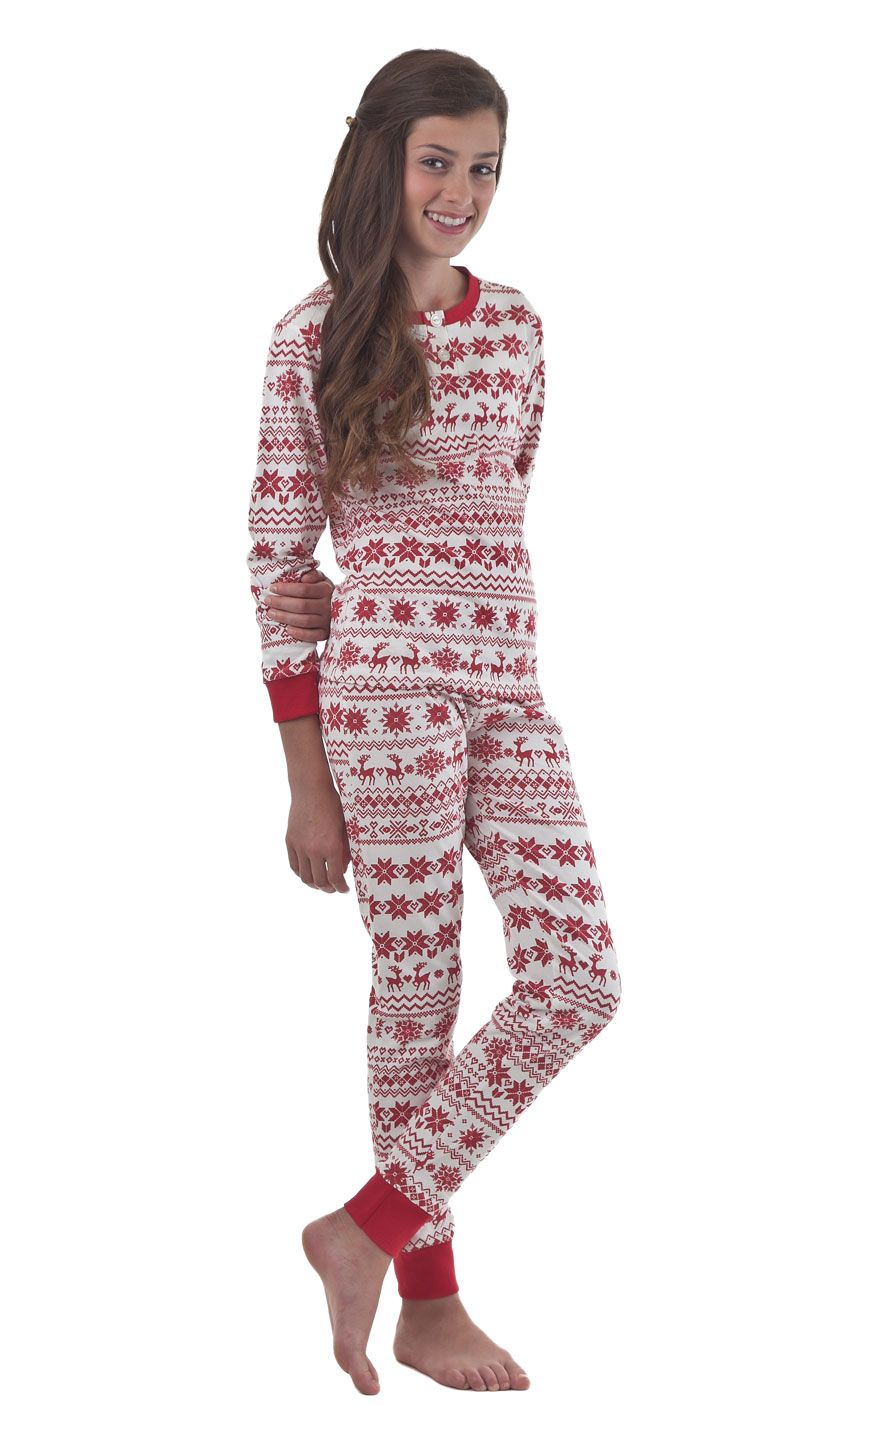 17 Best images about Pjs! on Pinterest | Bedhead, Sleep pants and ...